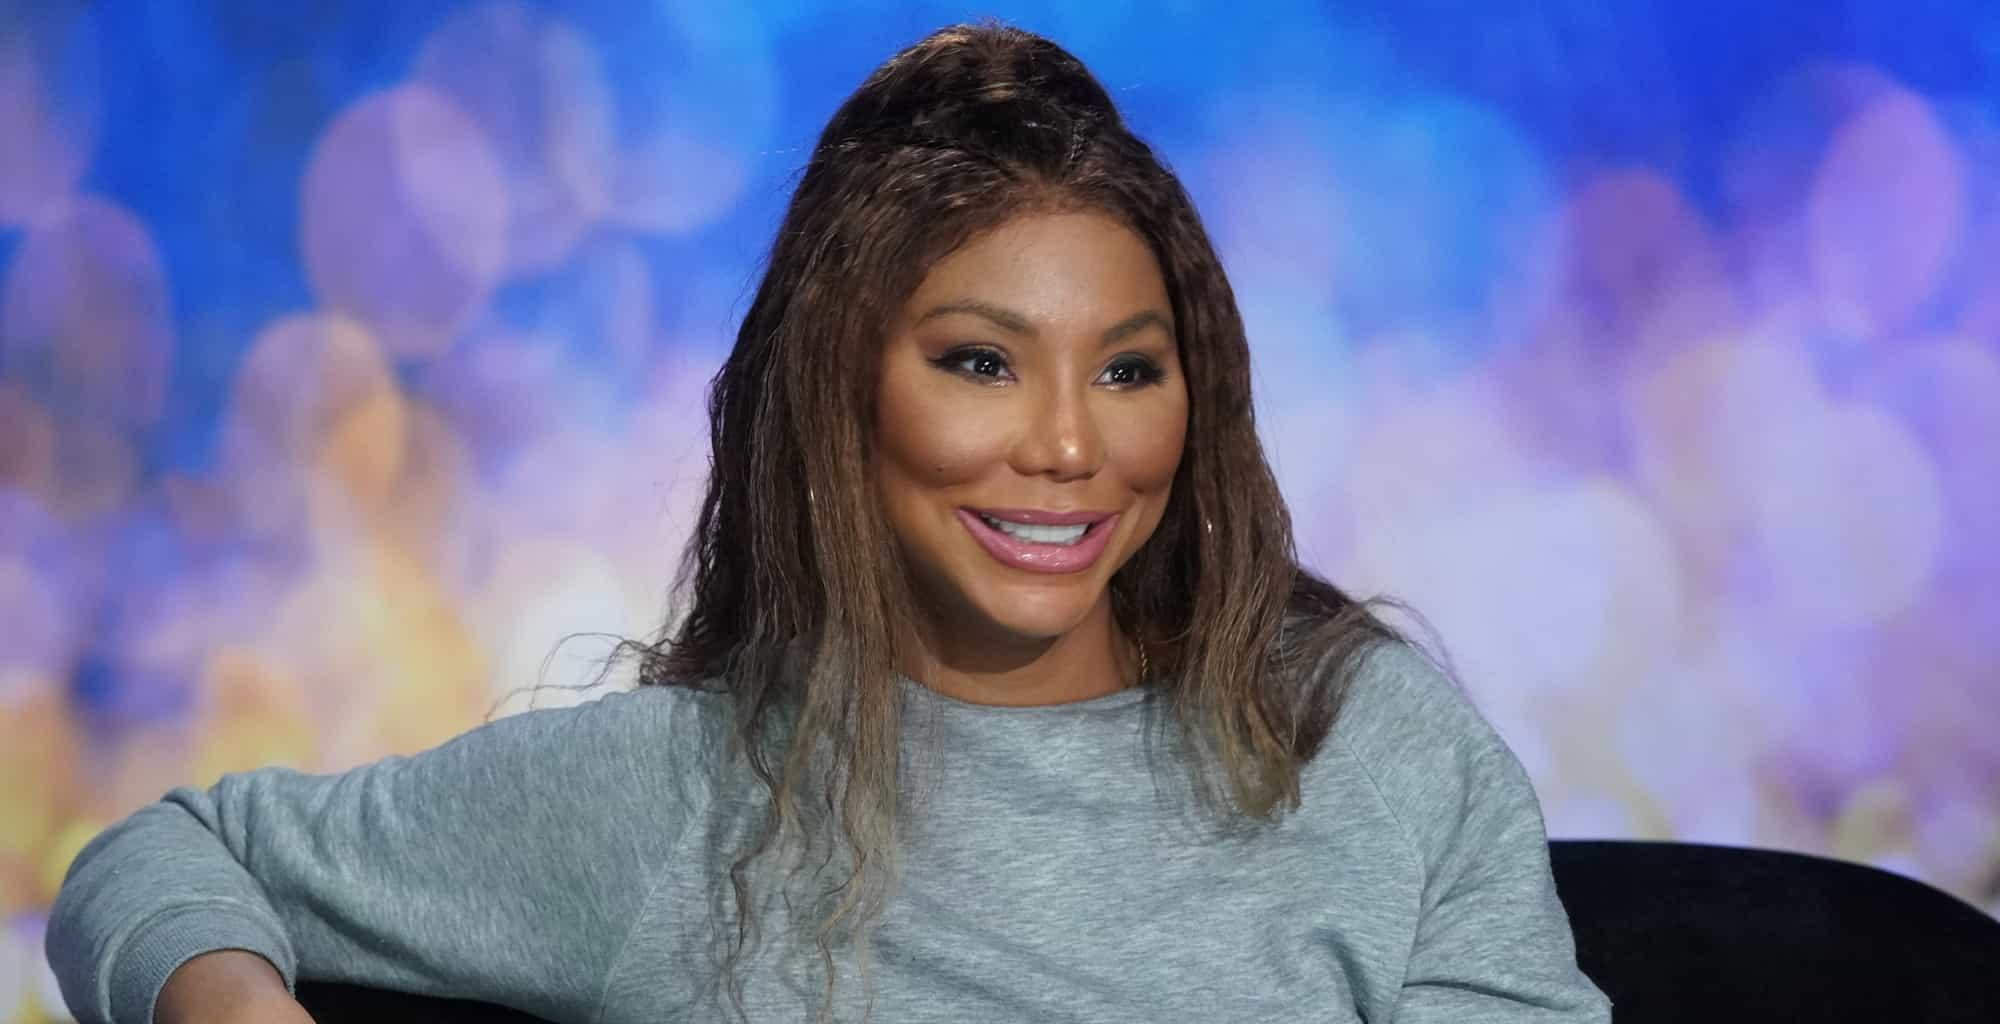 Tamar Braxton Begins Her Birthday Weekend And Also Gushes Over Her 'Real Life Sister' - Check Out The Crazy Video Which Has Fans Calling Her 'Ball Of Joy'